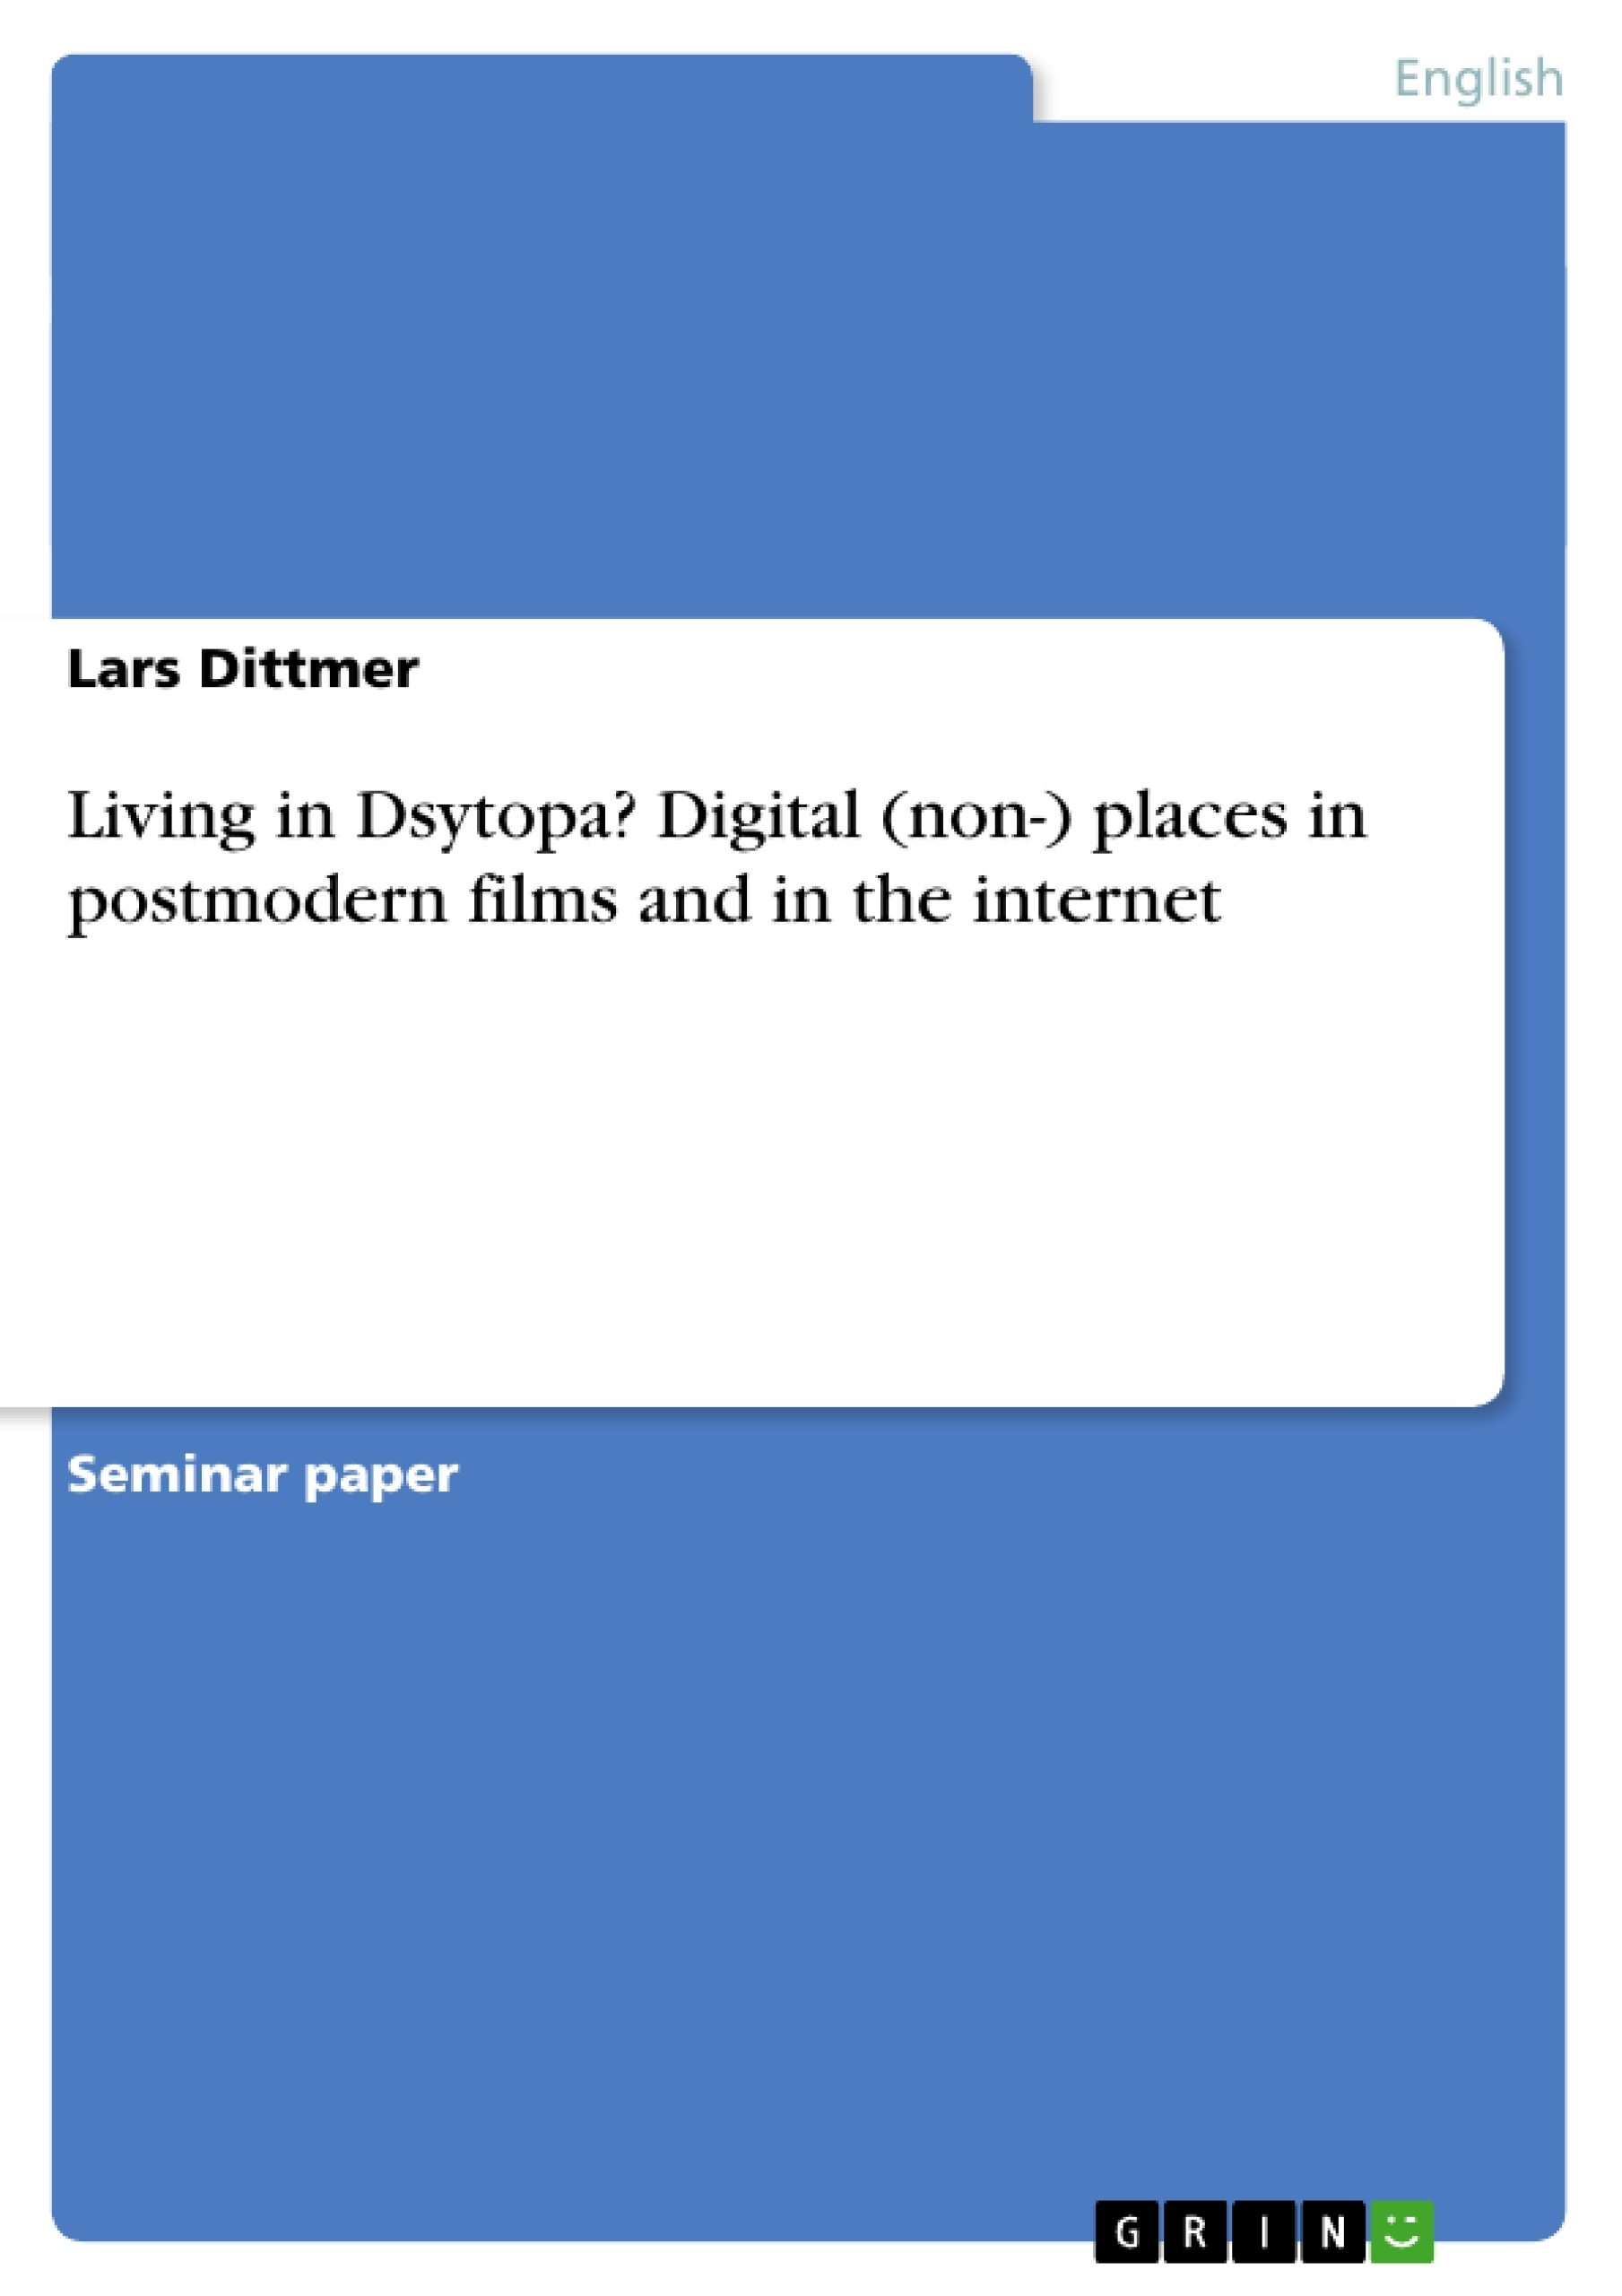 Title: Living in Dsytopa? Digital (non-) places in postmodern films and in the internet